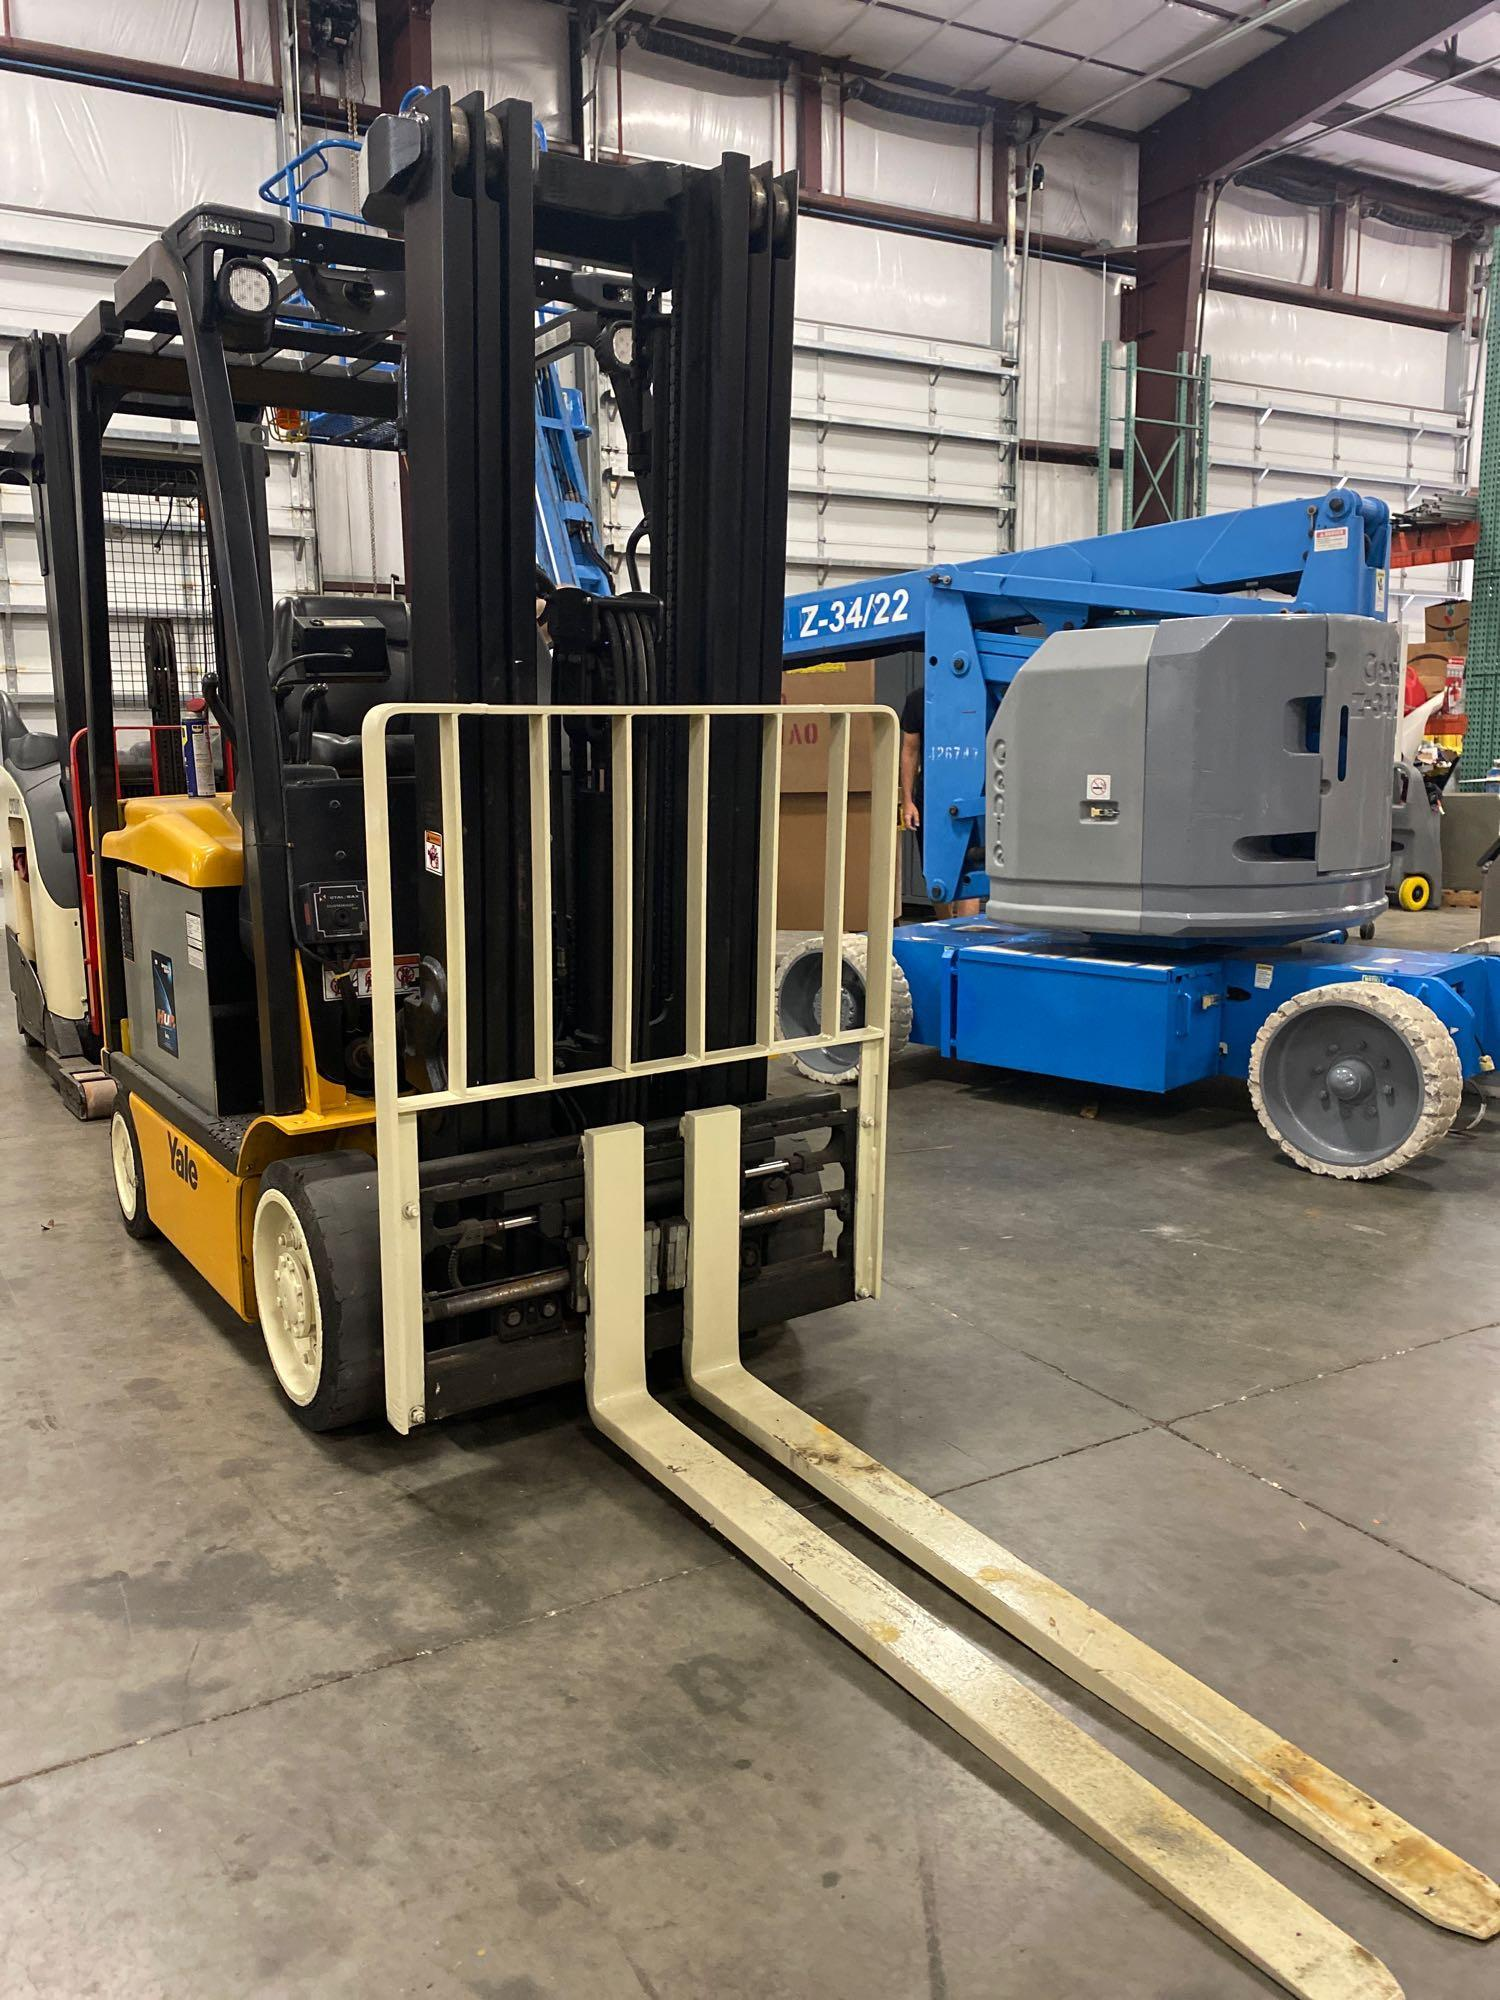 """YALE ELECTRIC FORKLIFT MODEL ERCO50VGN36TE088, 36V, 200.8"""" HEIGHT CAPACITY, APPROX. 5,000 LB CAPACIT - Image 6 of 9"""